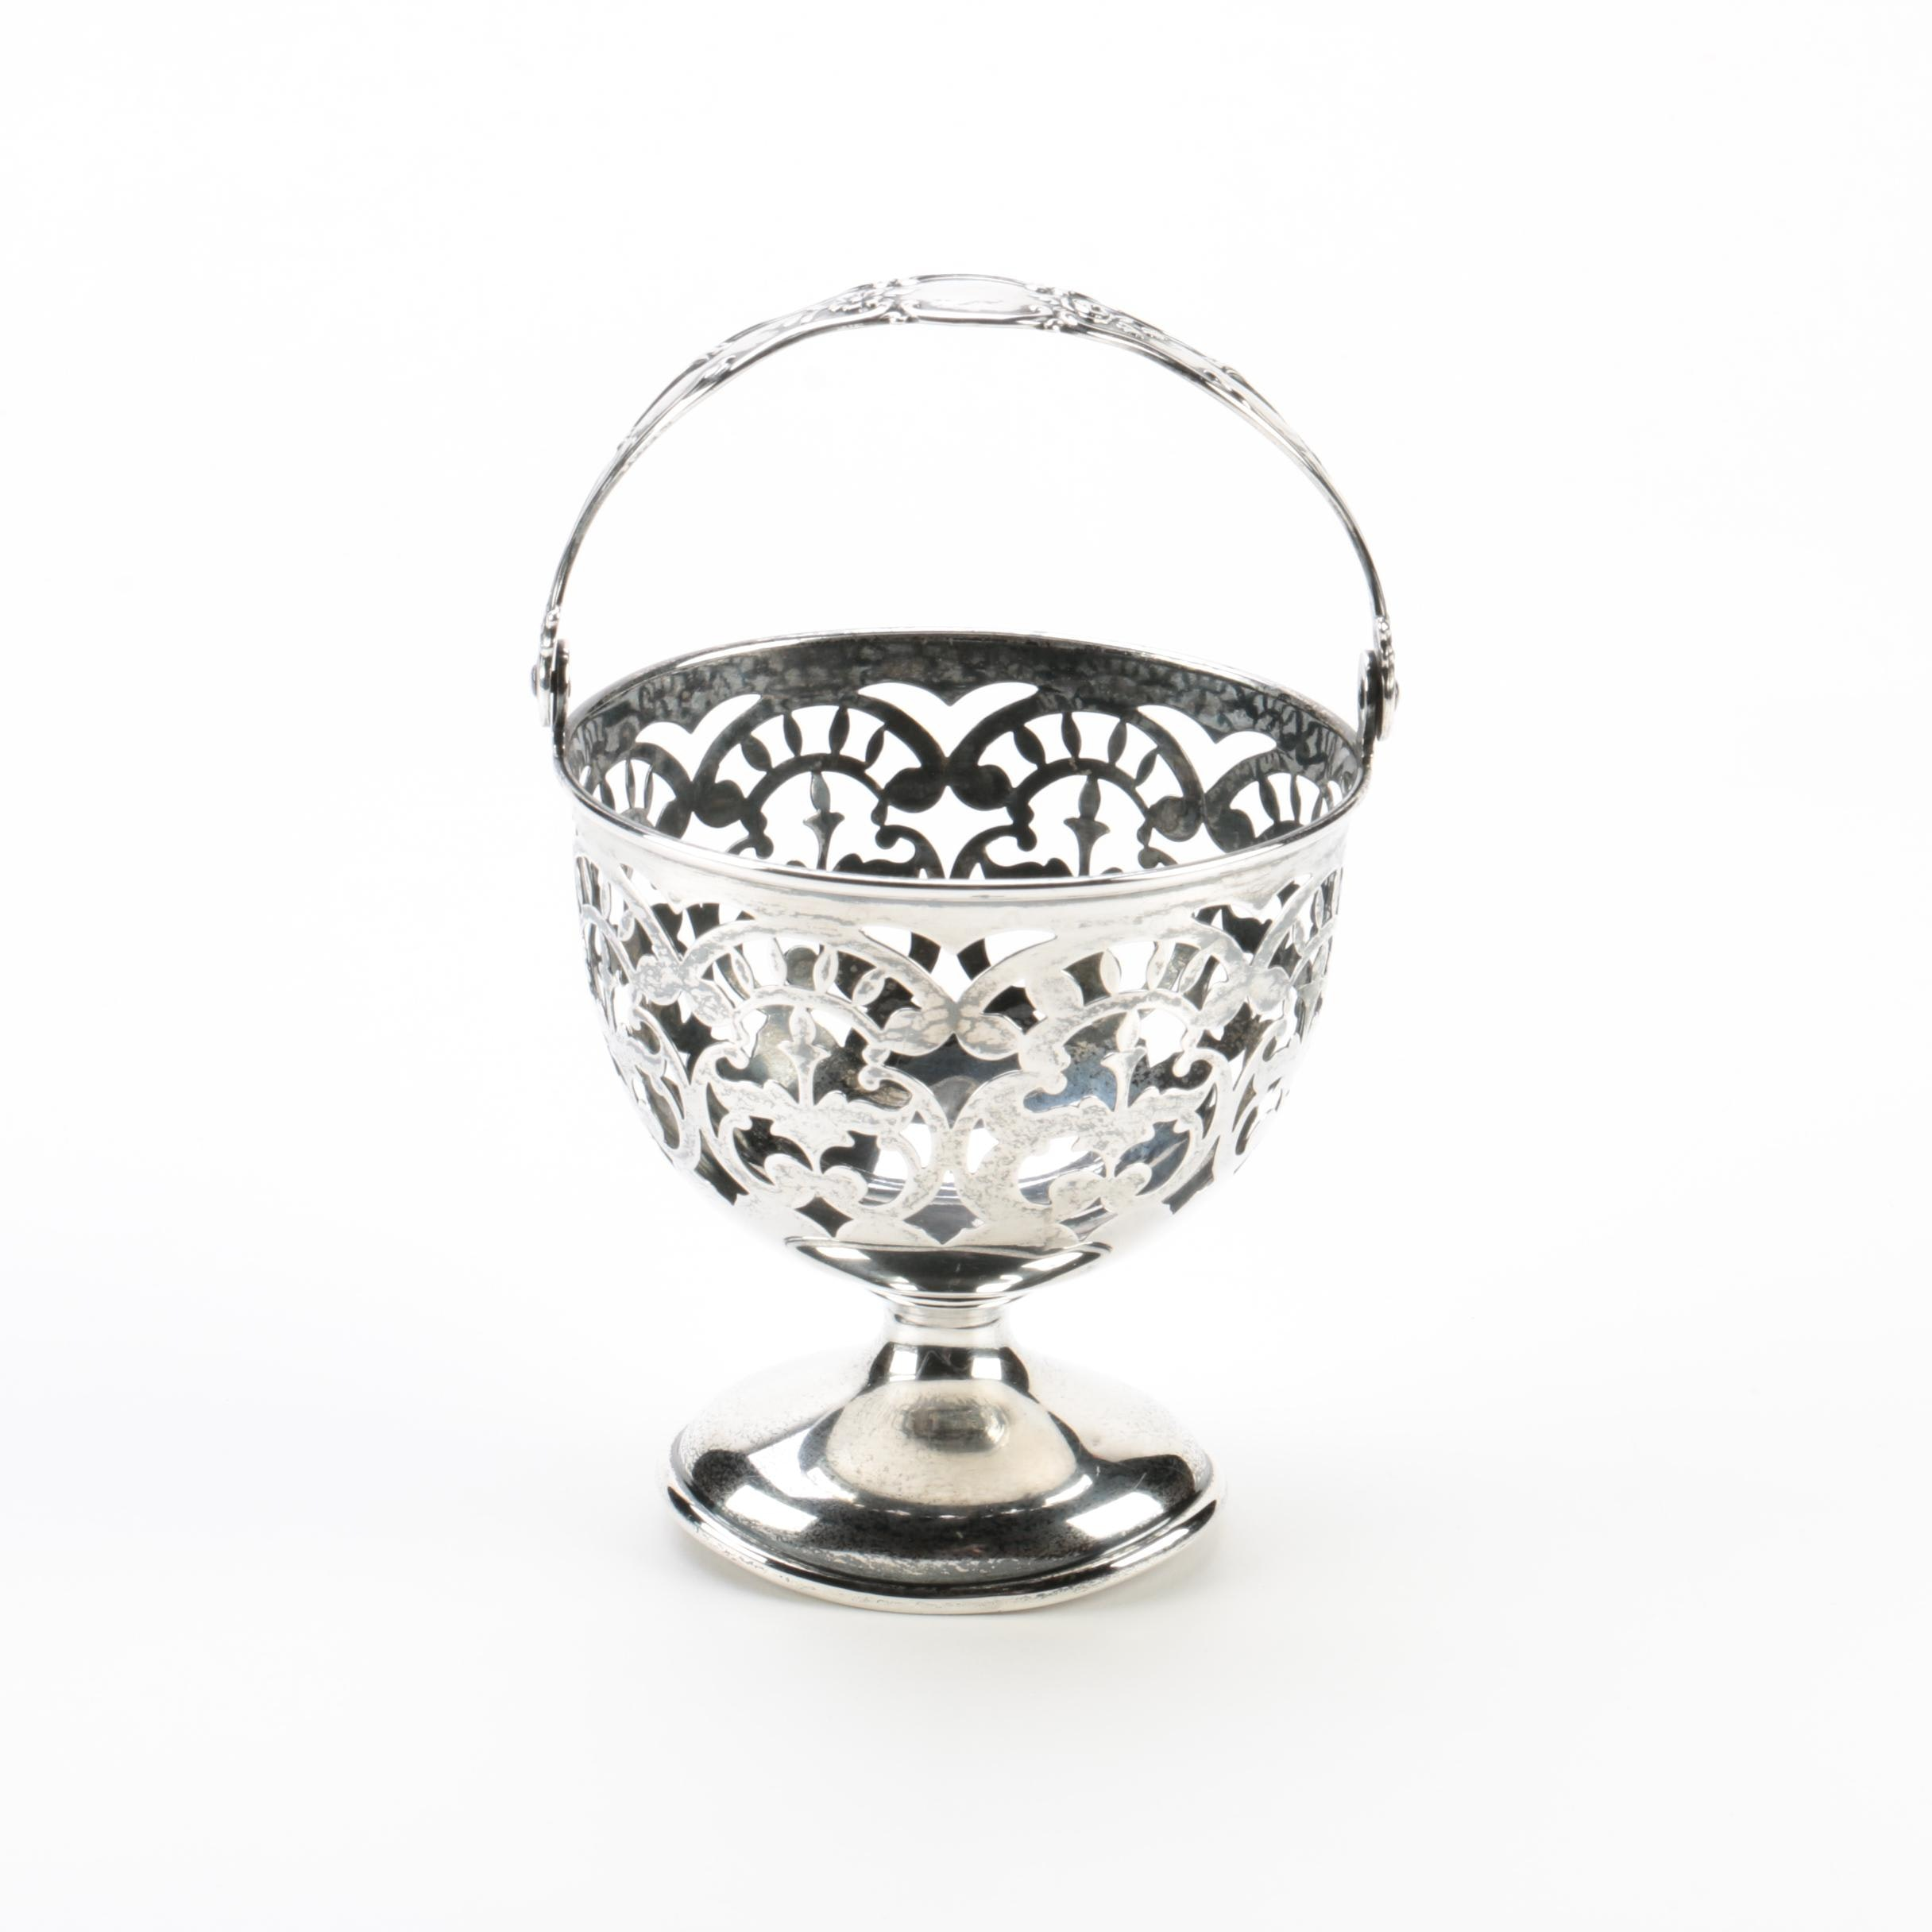 Sterling Silver Openwork Sugar Basket Made for Tiffany & Co.